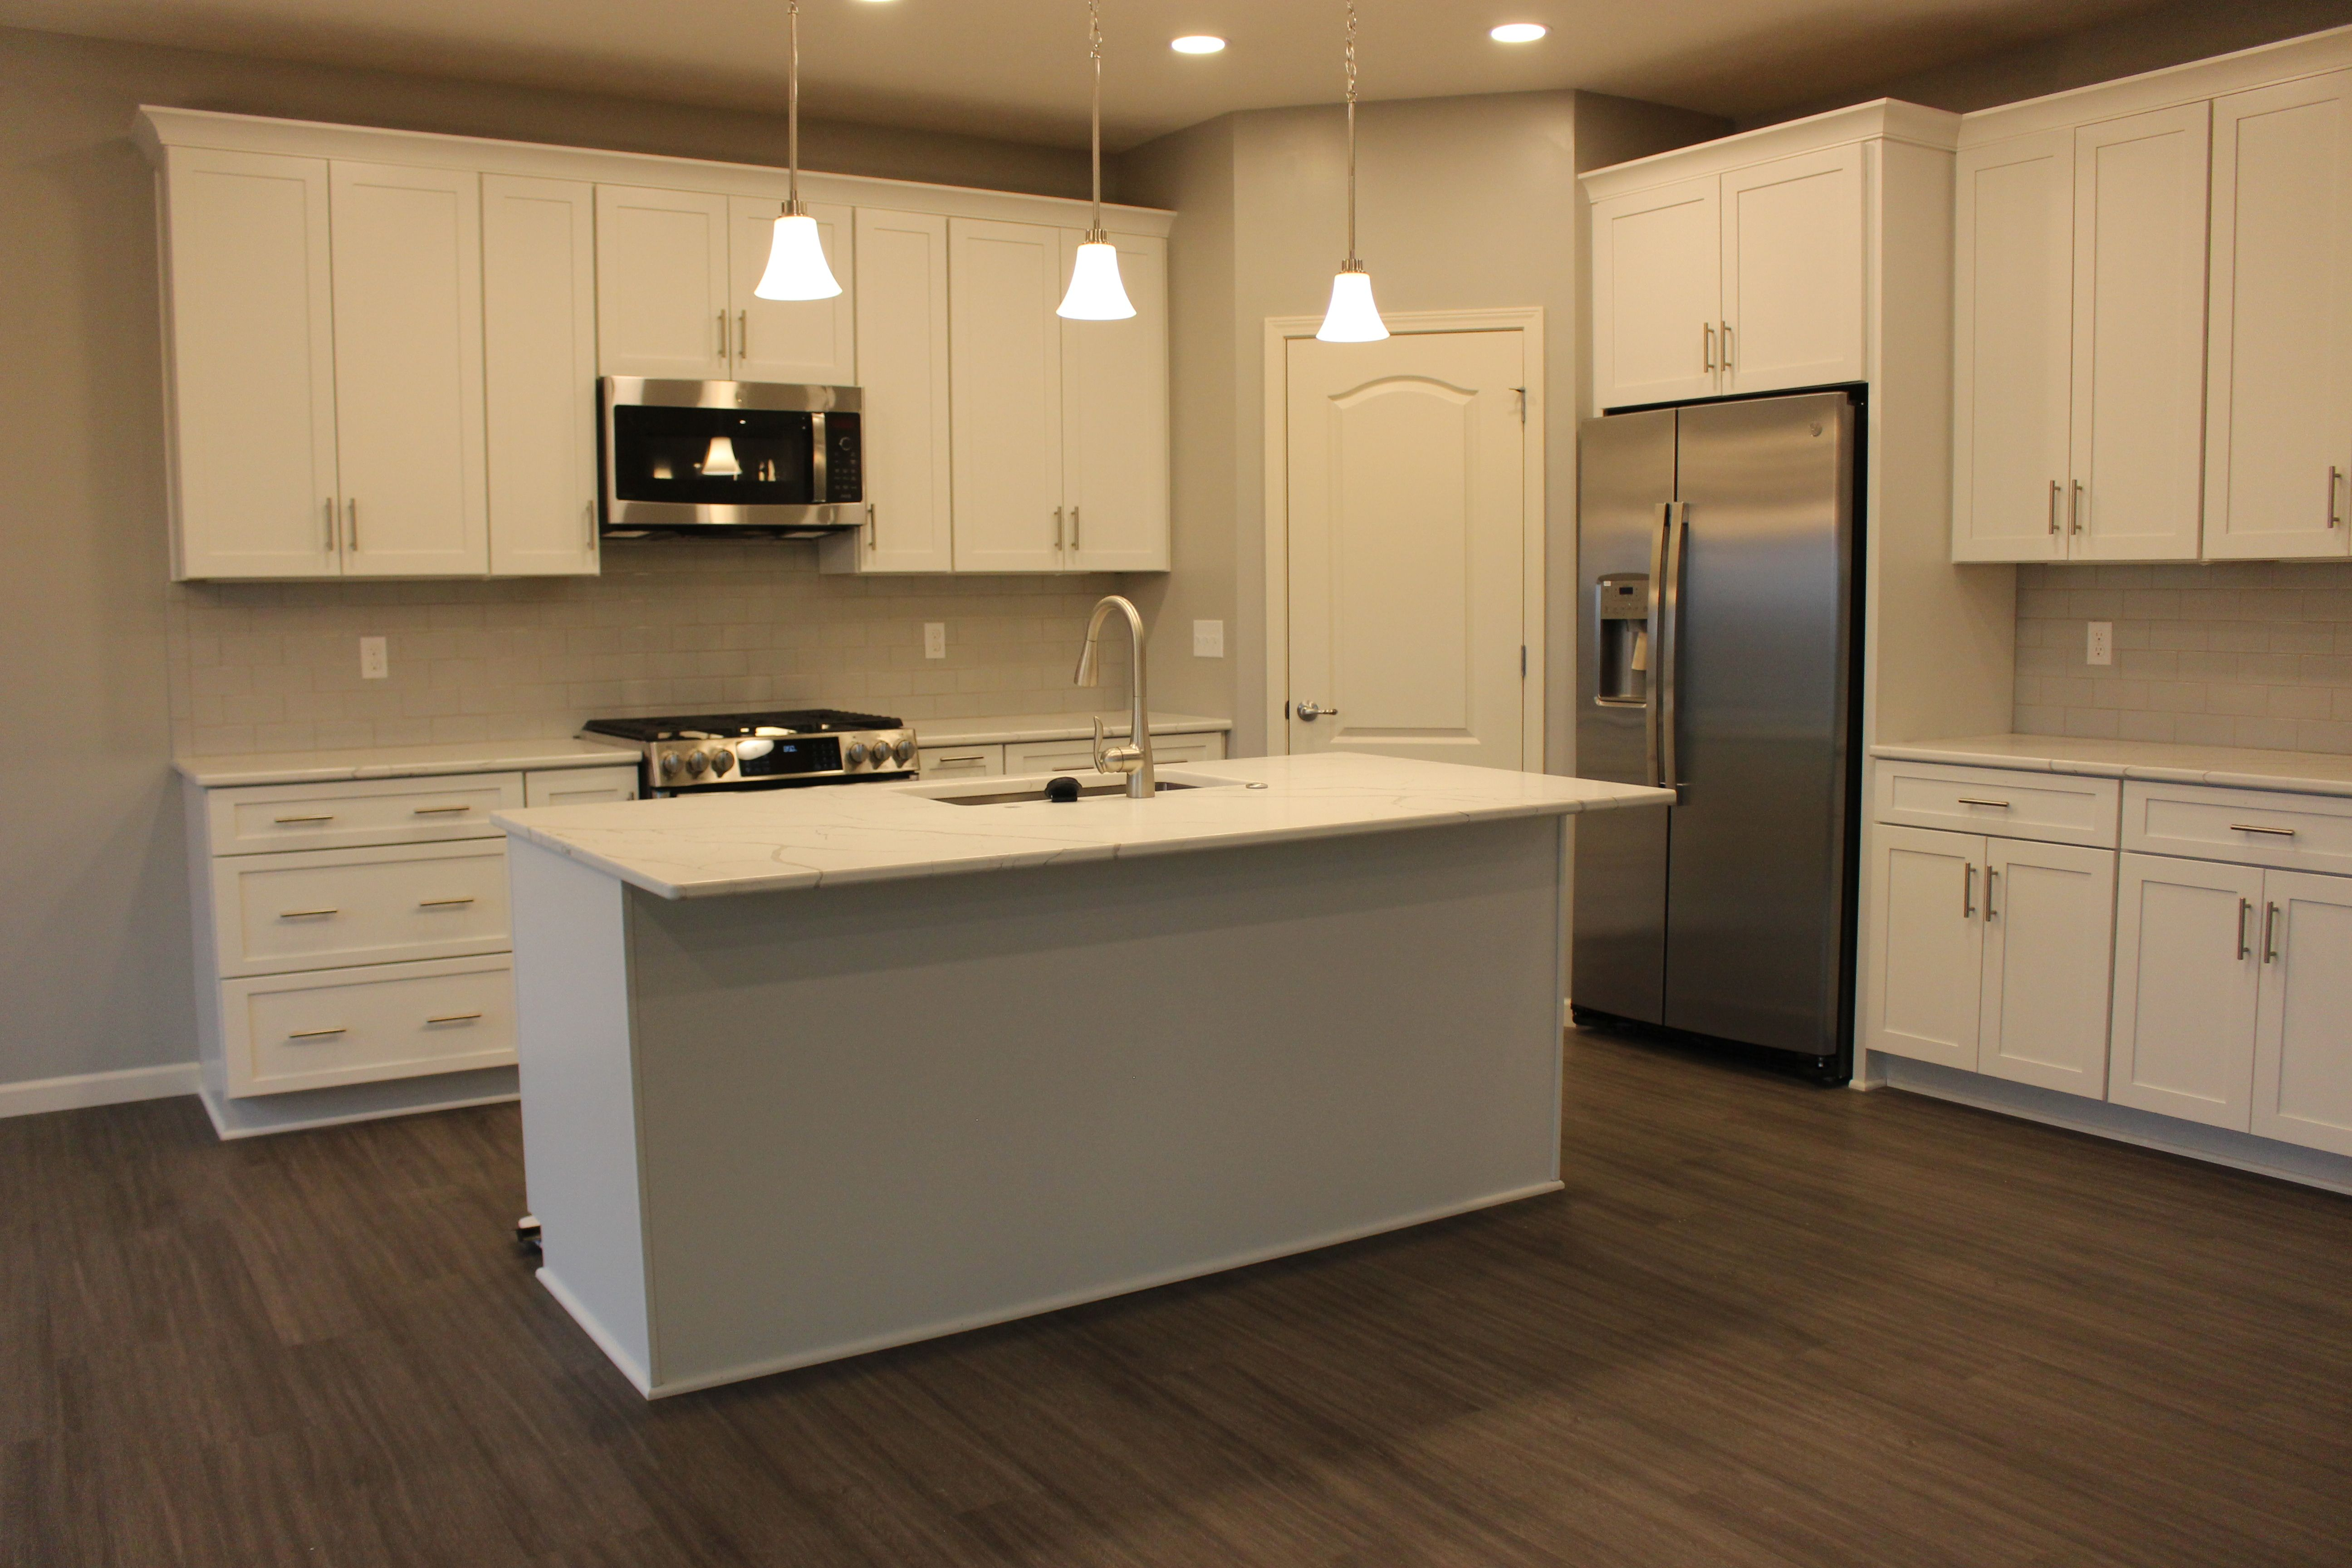 Kitchen featured in the Pinnacle By Faber Builders in Rochester, NY